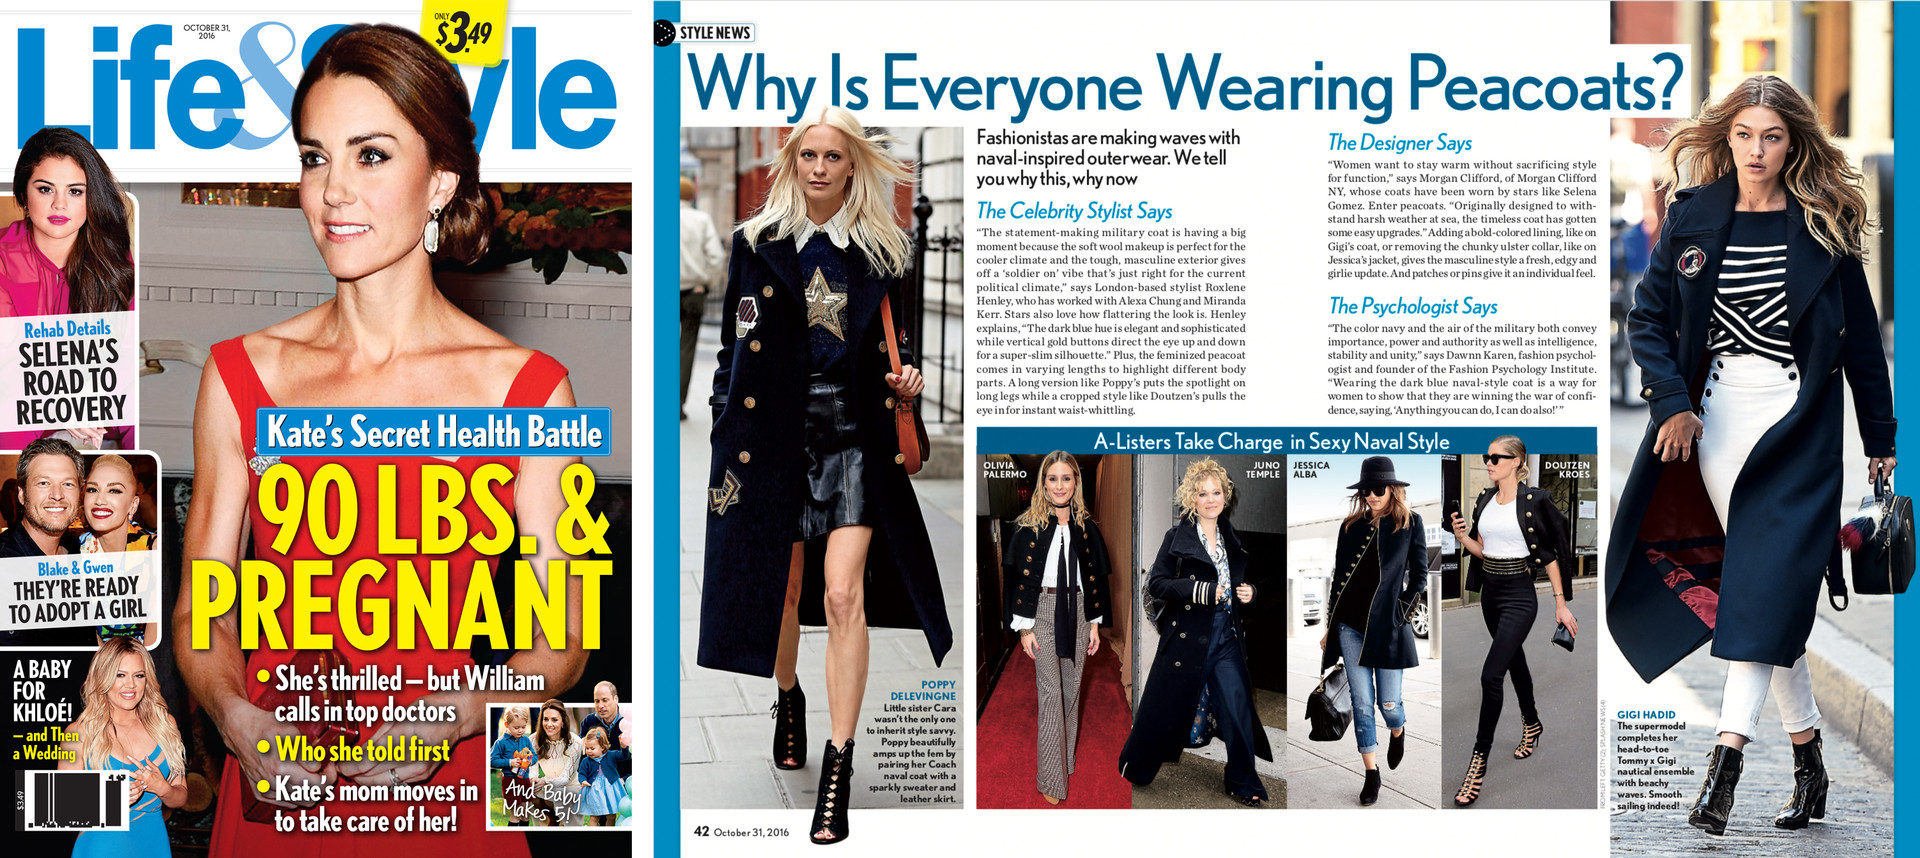 Life&Style Peacoats feature